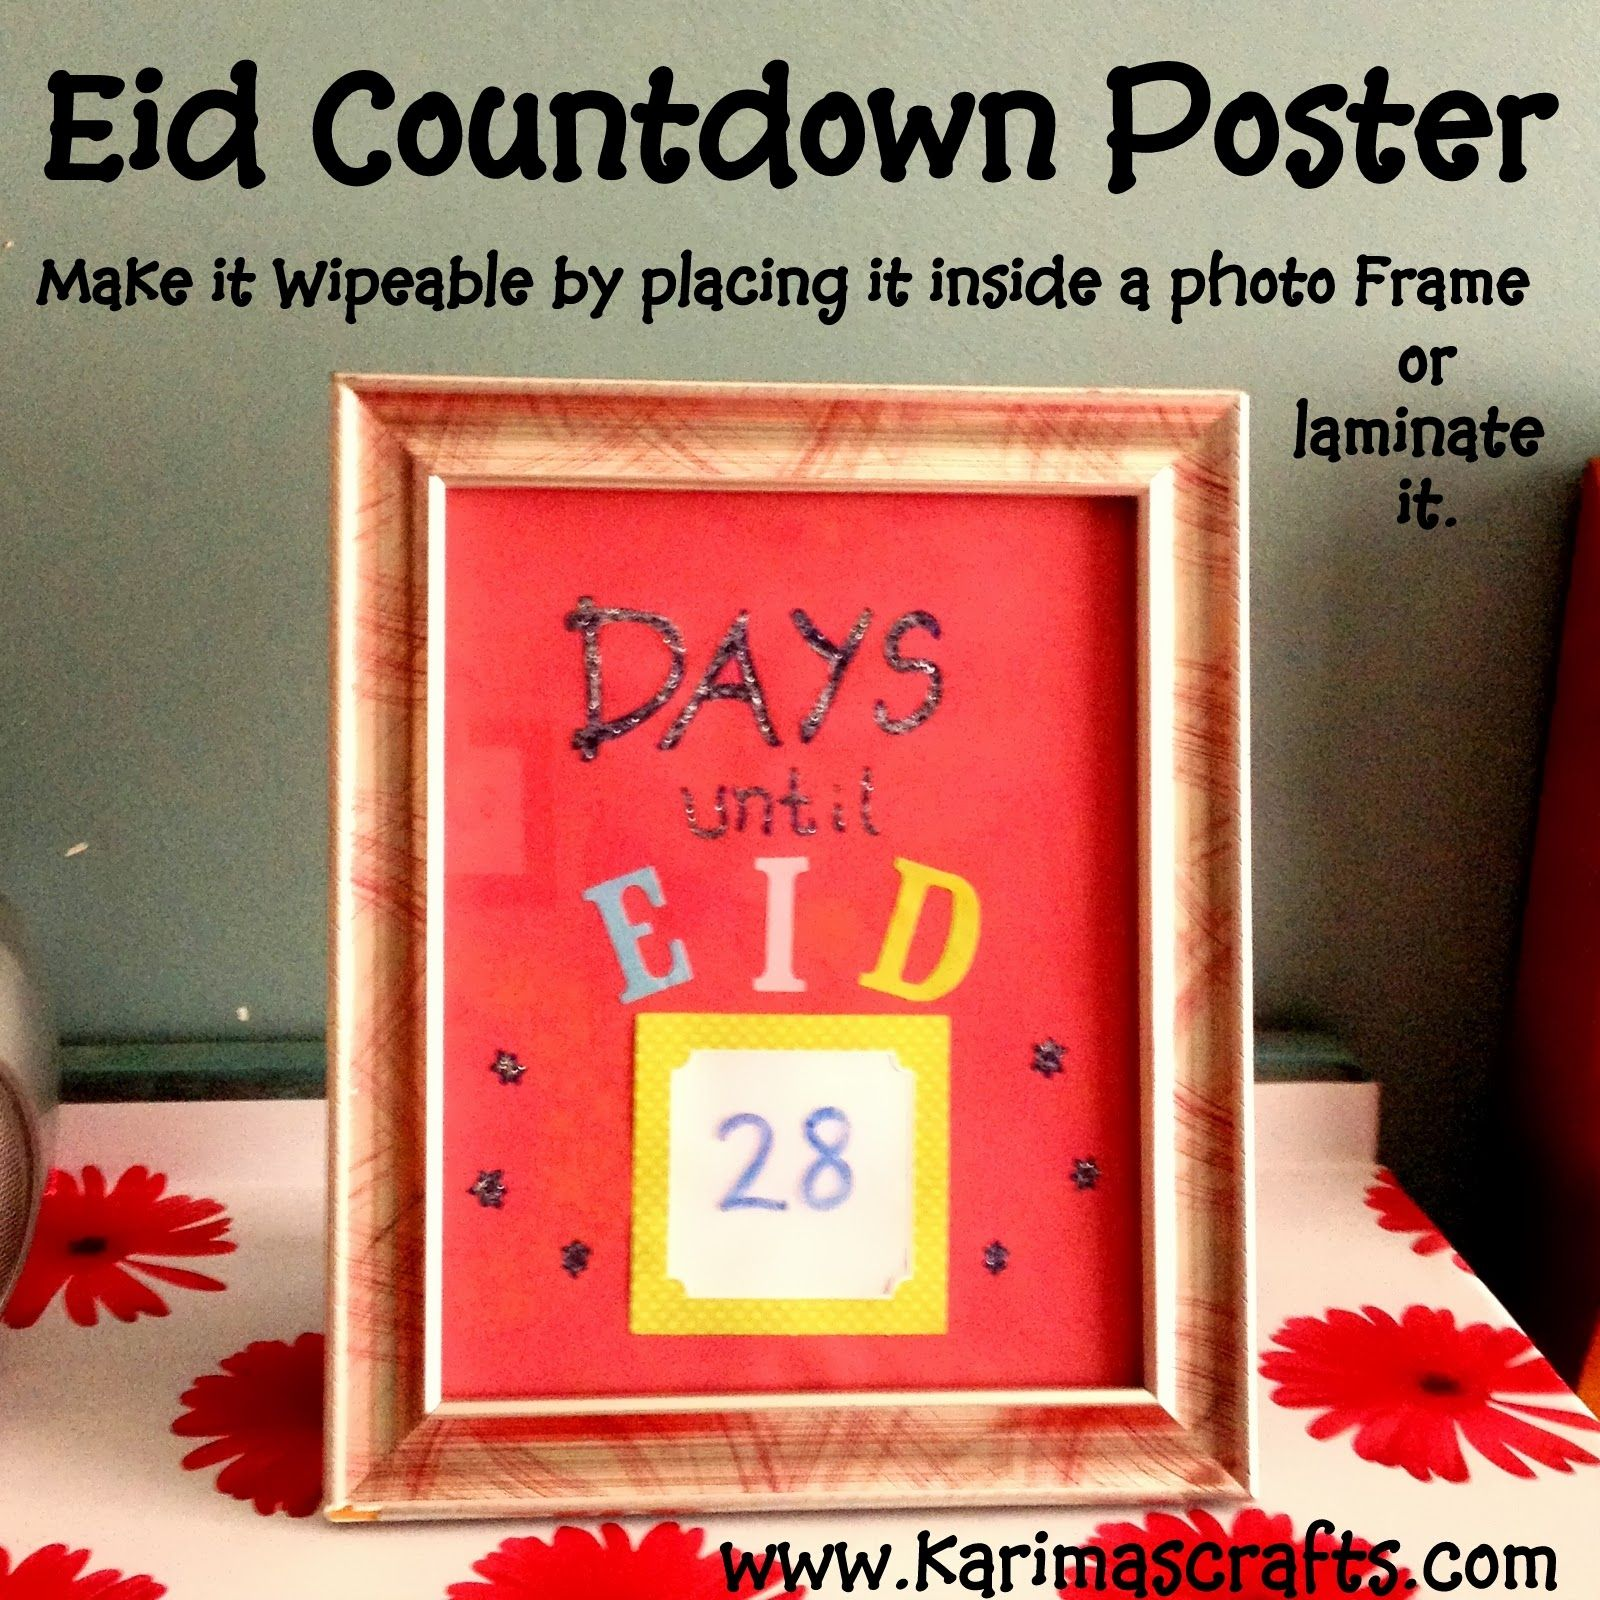 Eid Countdown Poster Wipeable From 30 Days Of Ramadan